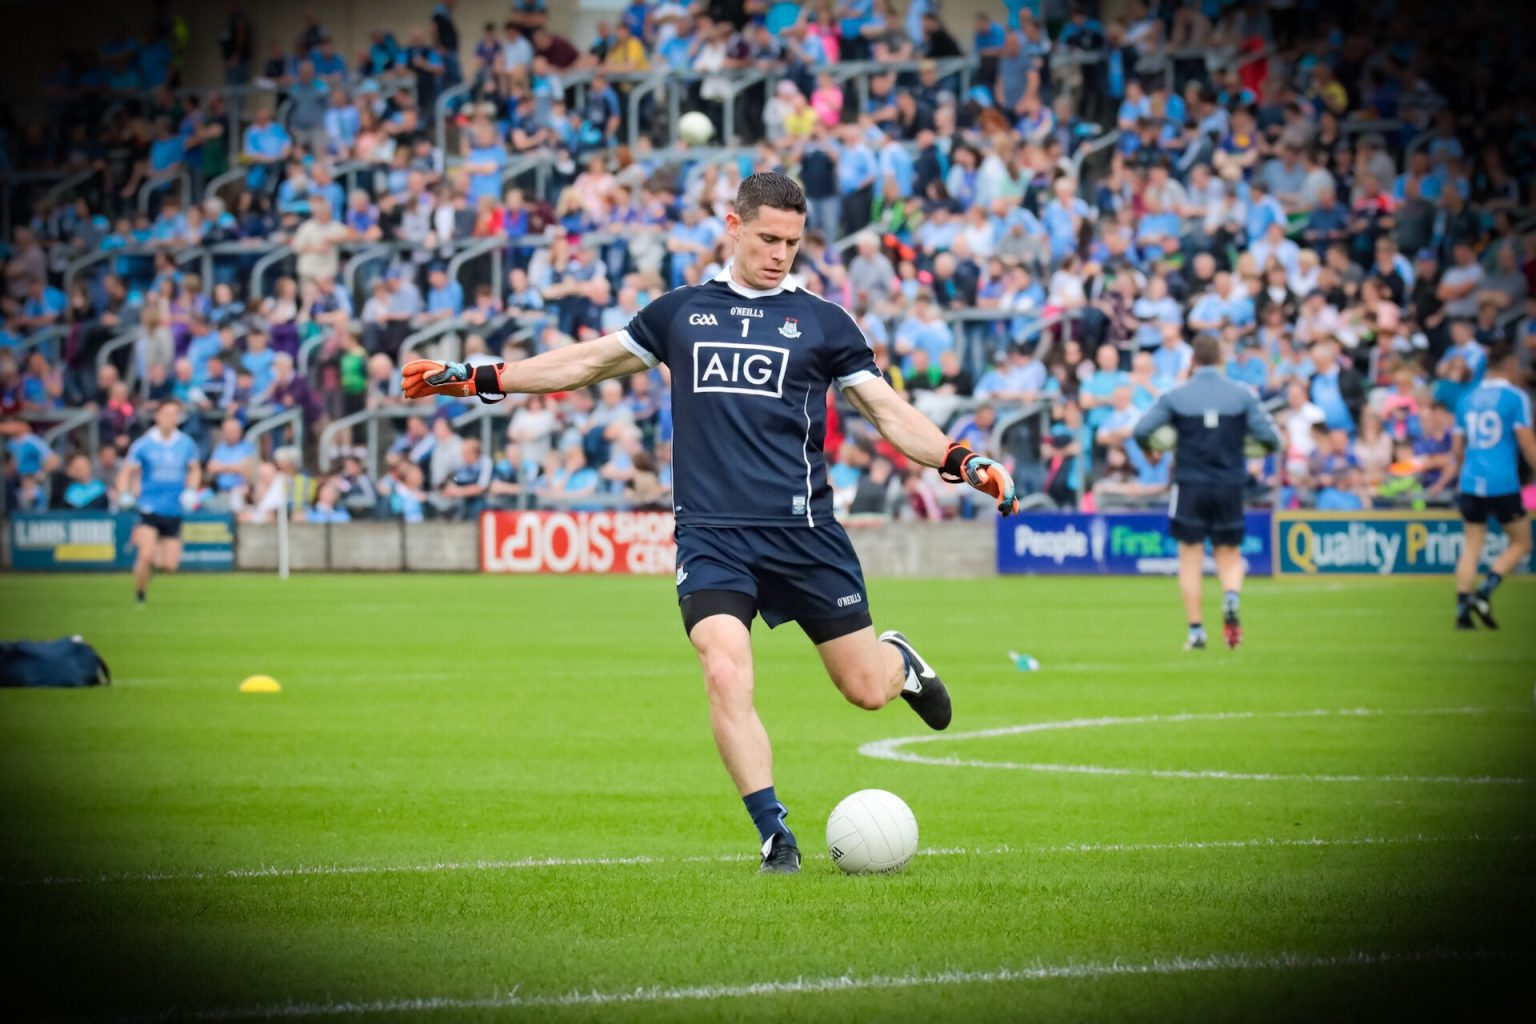 Dublin Captain Stephen Cluxton in a Navy Jersey and shorts has once again been snubbed for an All Star Award